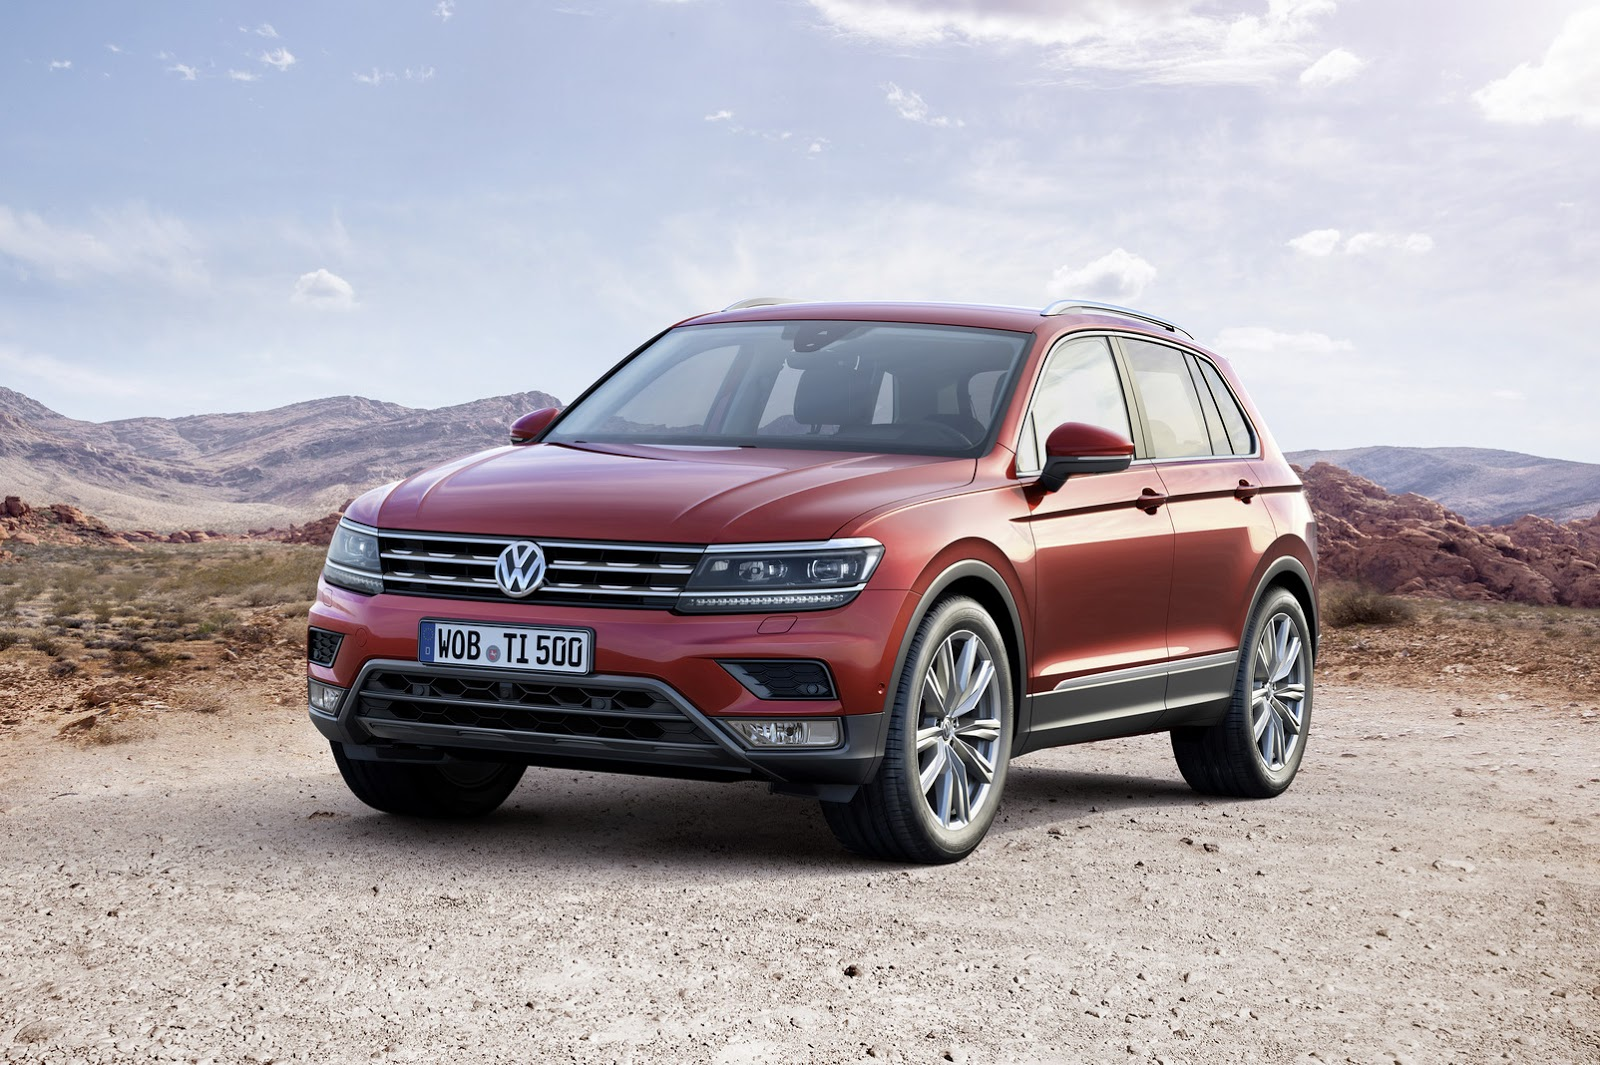 New-2017-VW-Tiguan-16.jpg